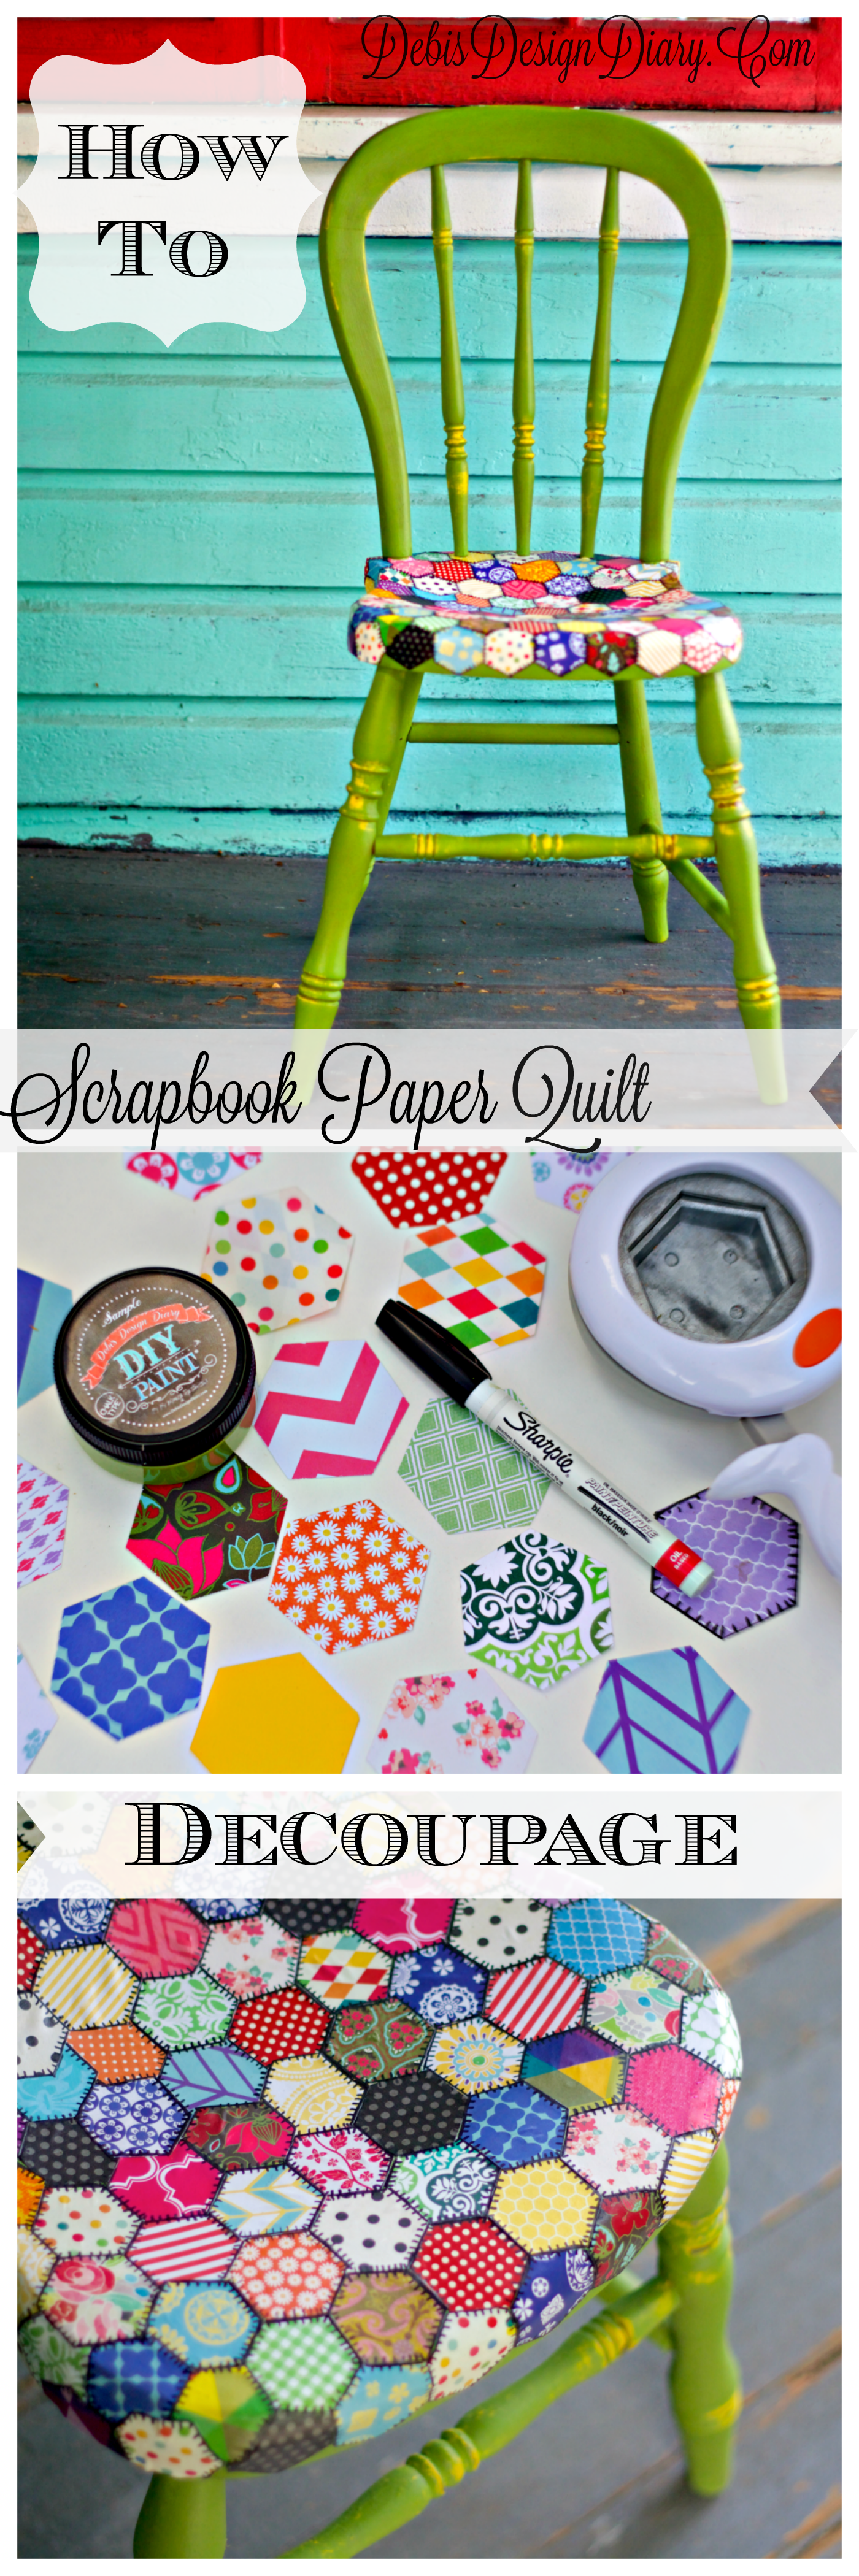 diy decoupage furniture. How To Decoupage Furniture In A Quilt Pattern With Scrapbook Paper. Also, This Chair Diy E